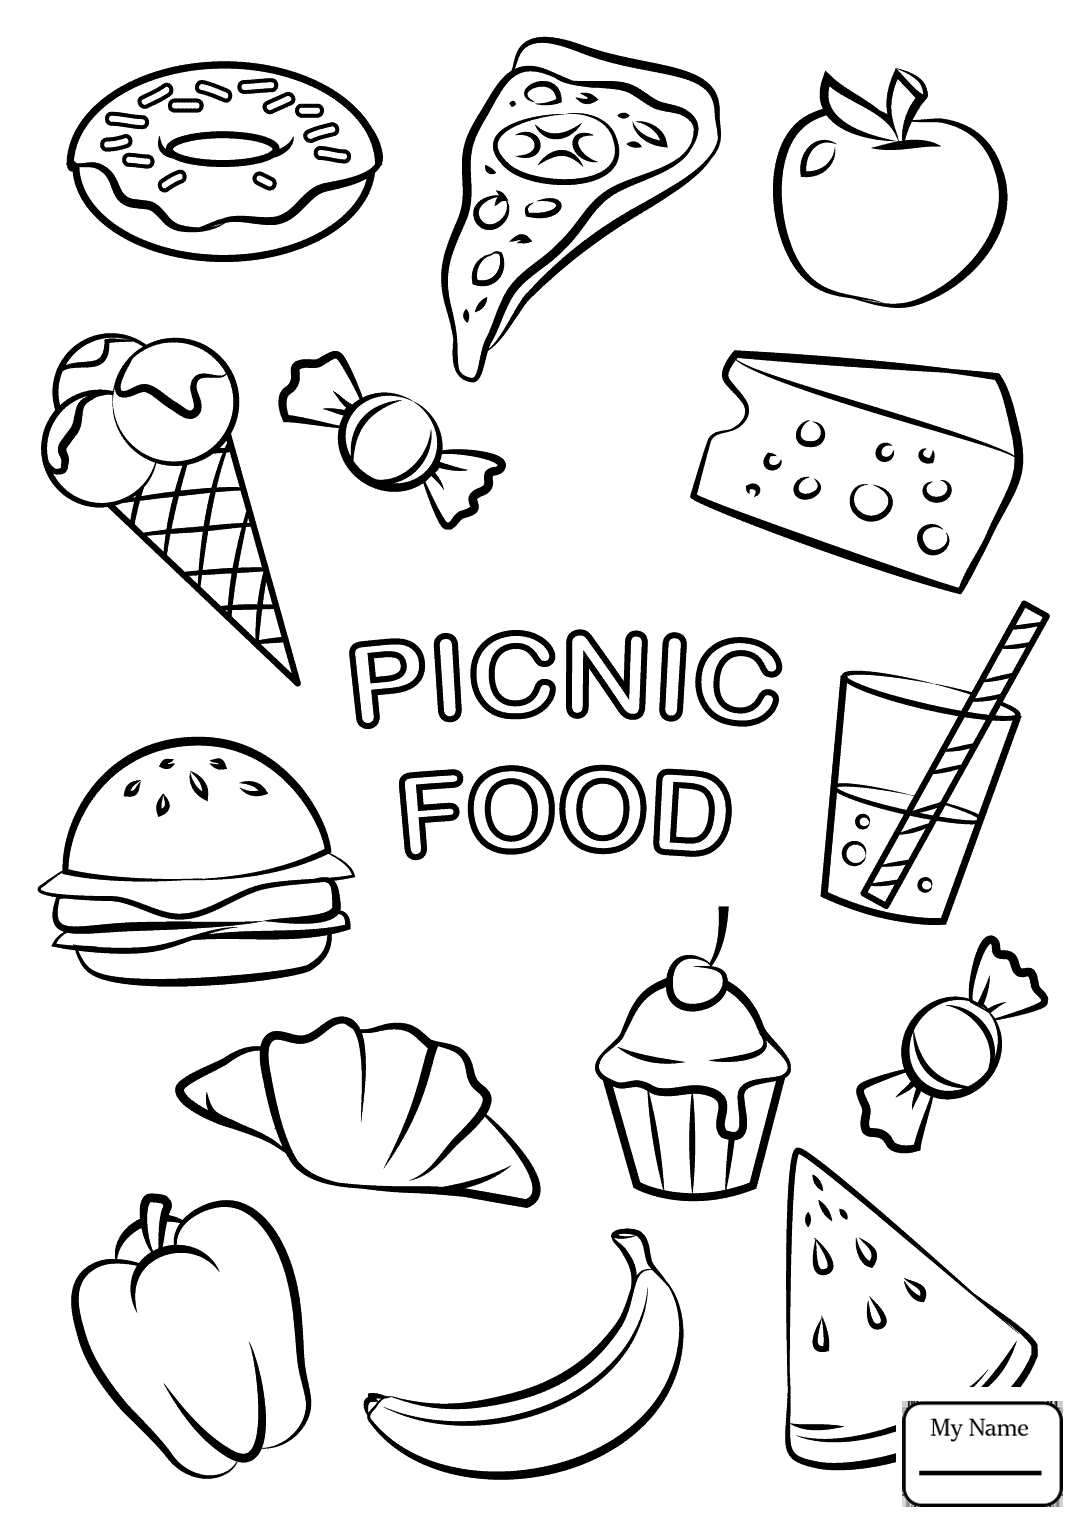 Picnic Blanket Drawing at GetDrawings.com | Free for personal use ...